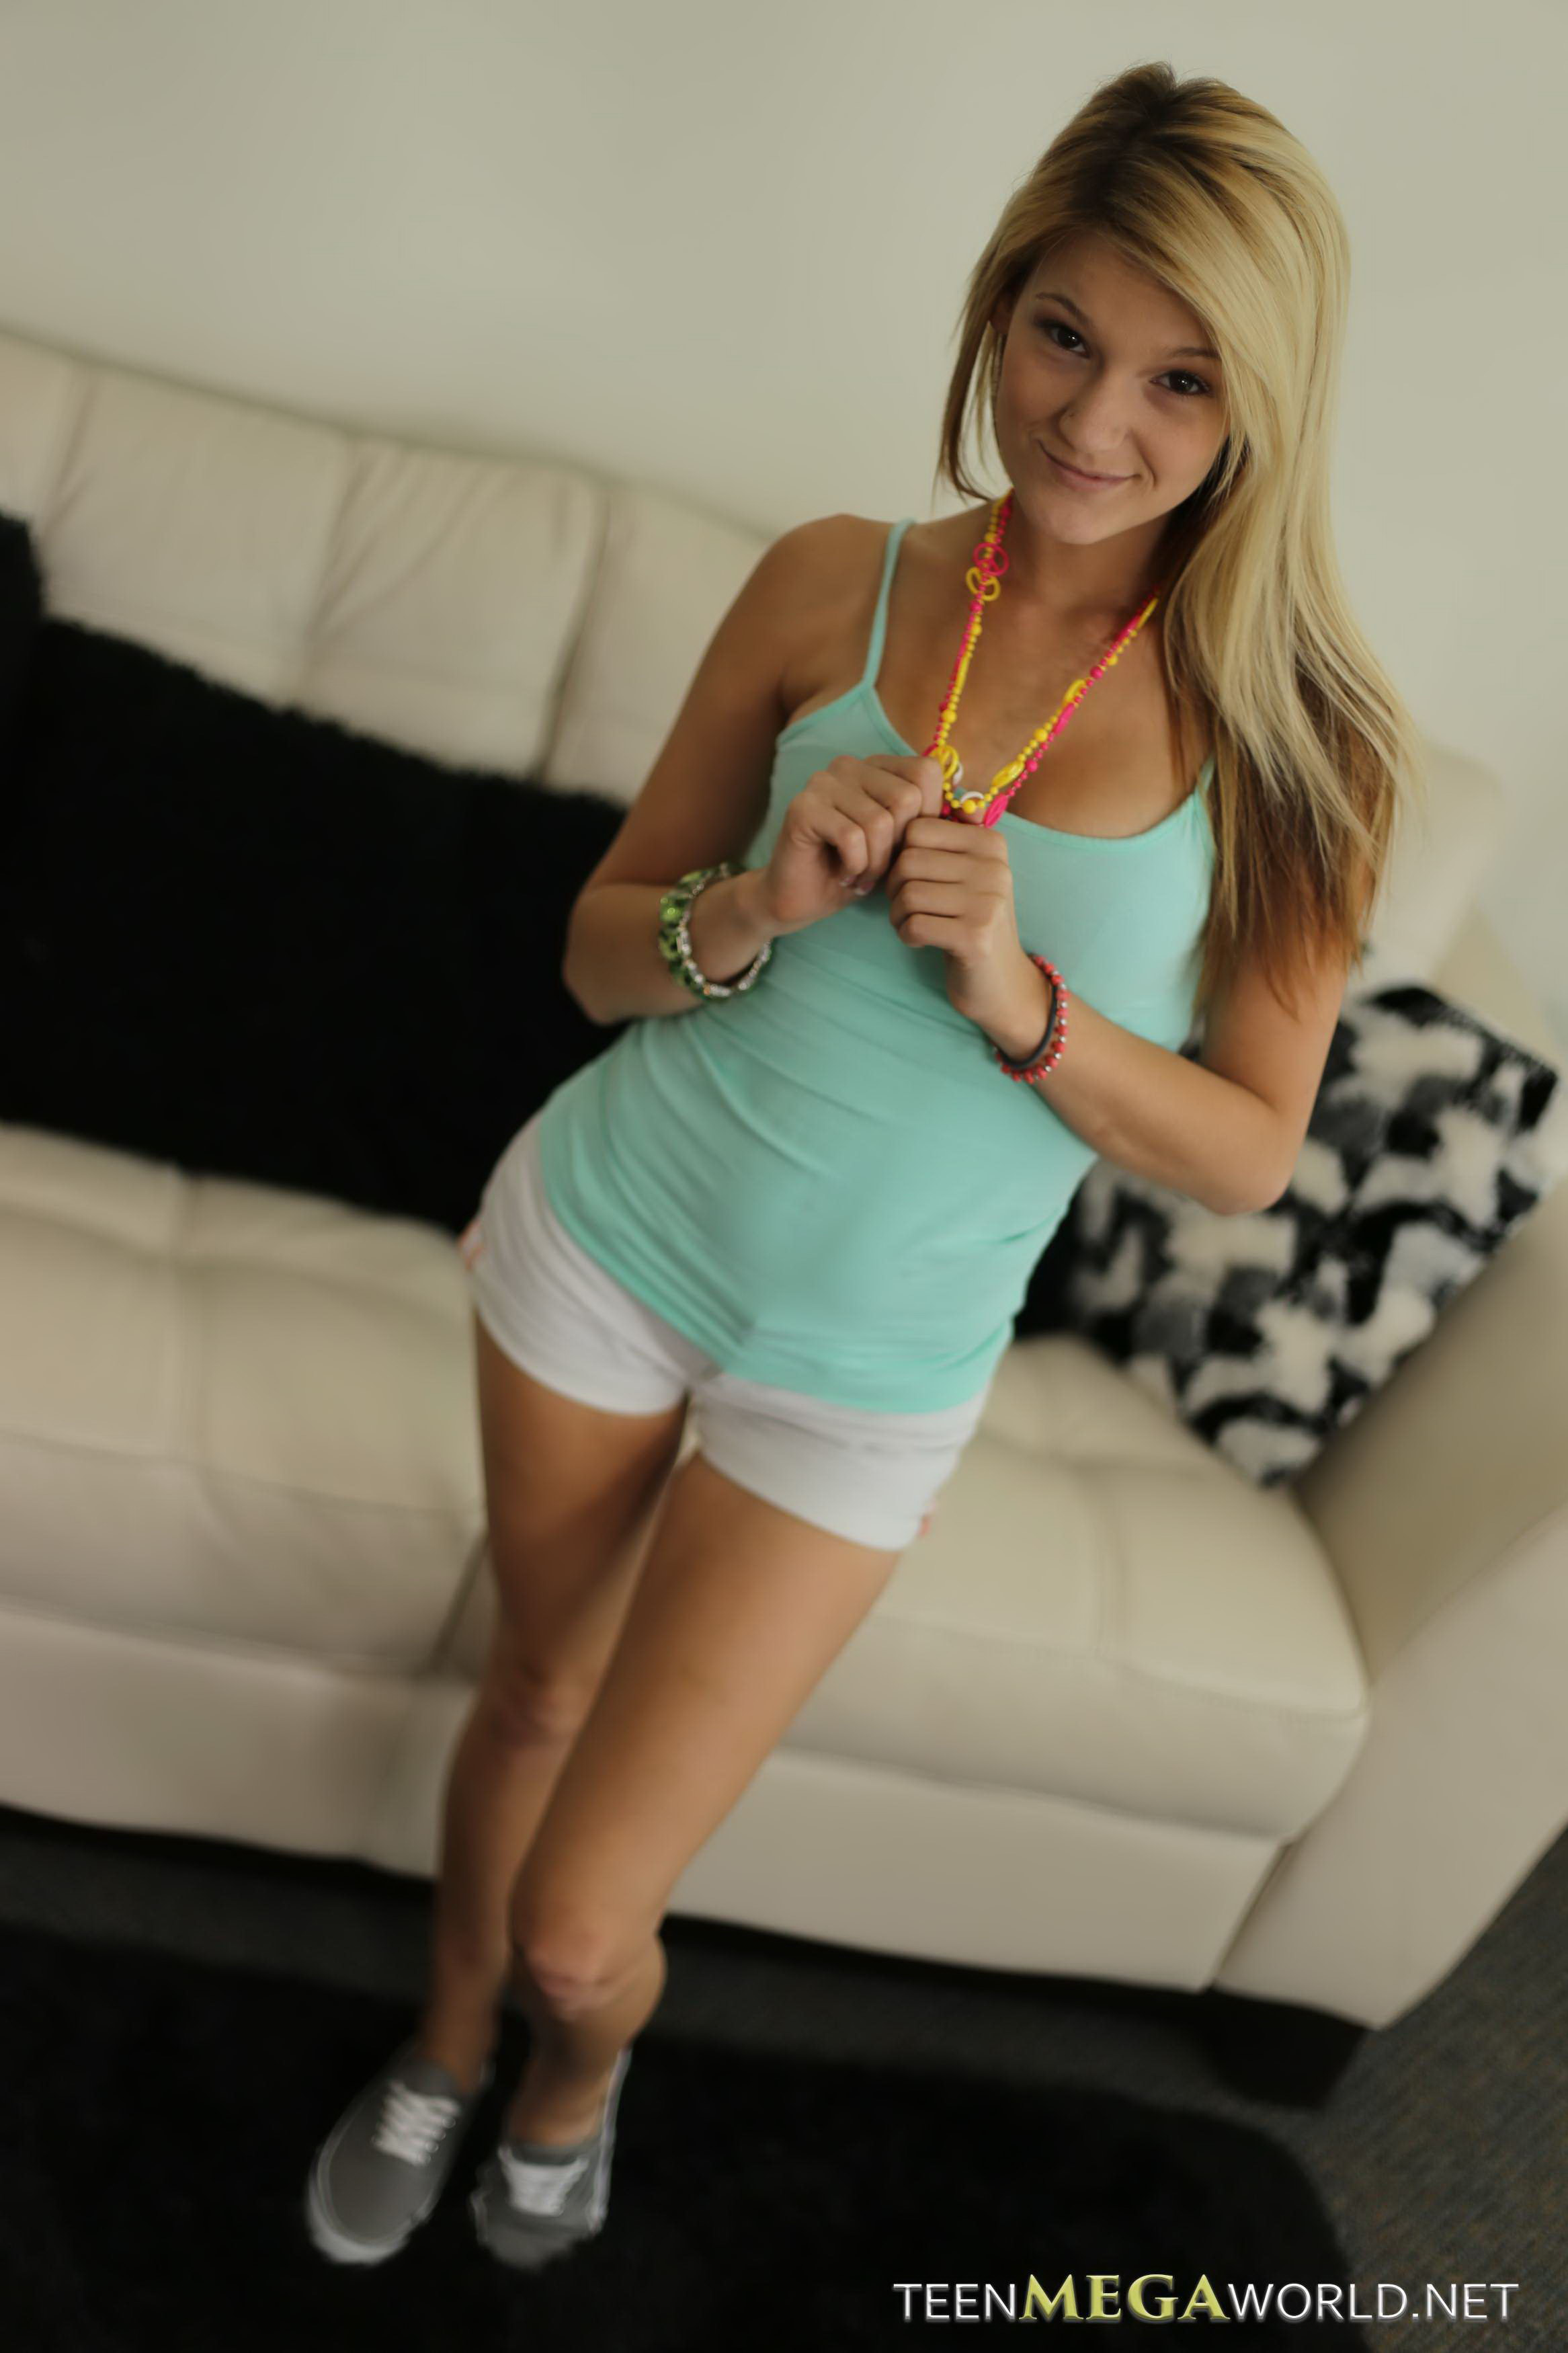 free-video-of-teen-striping